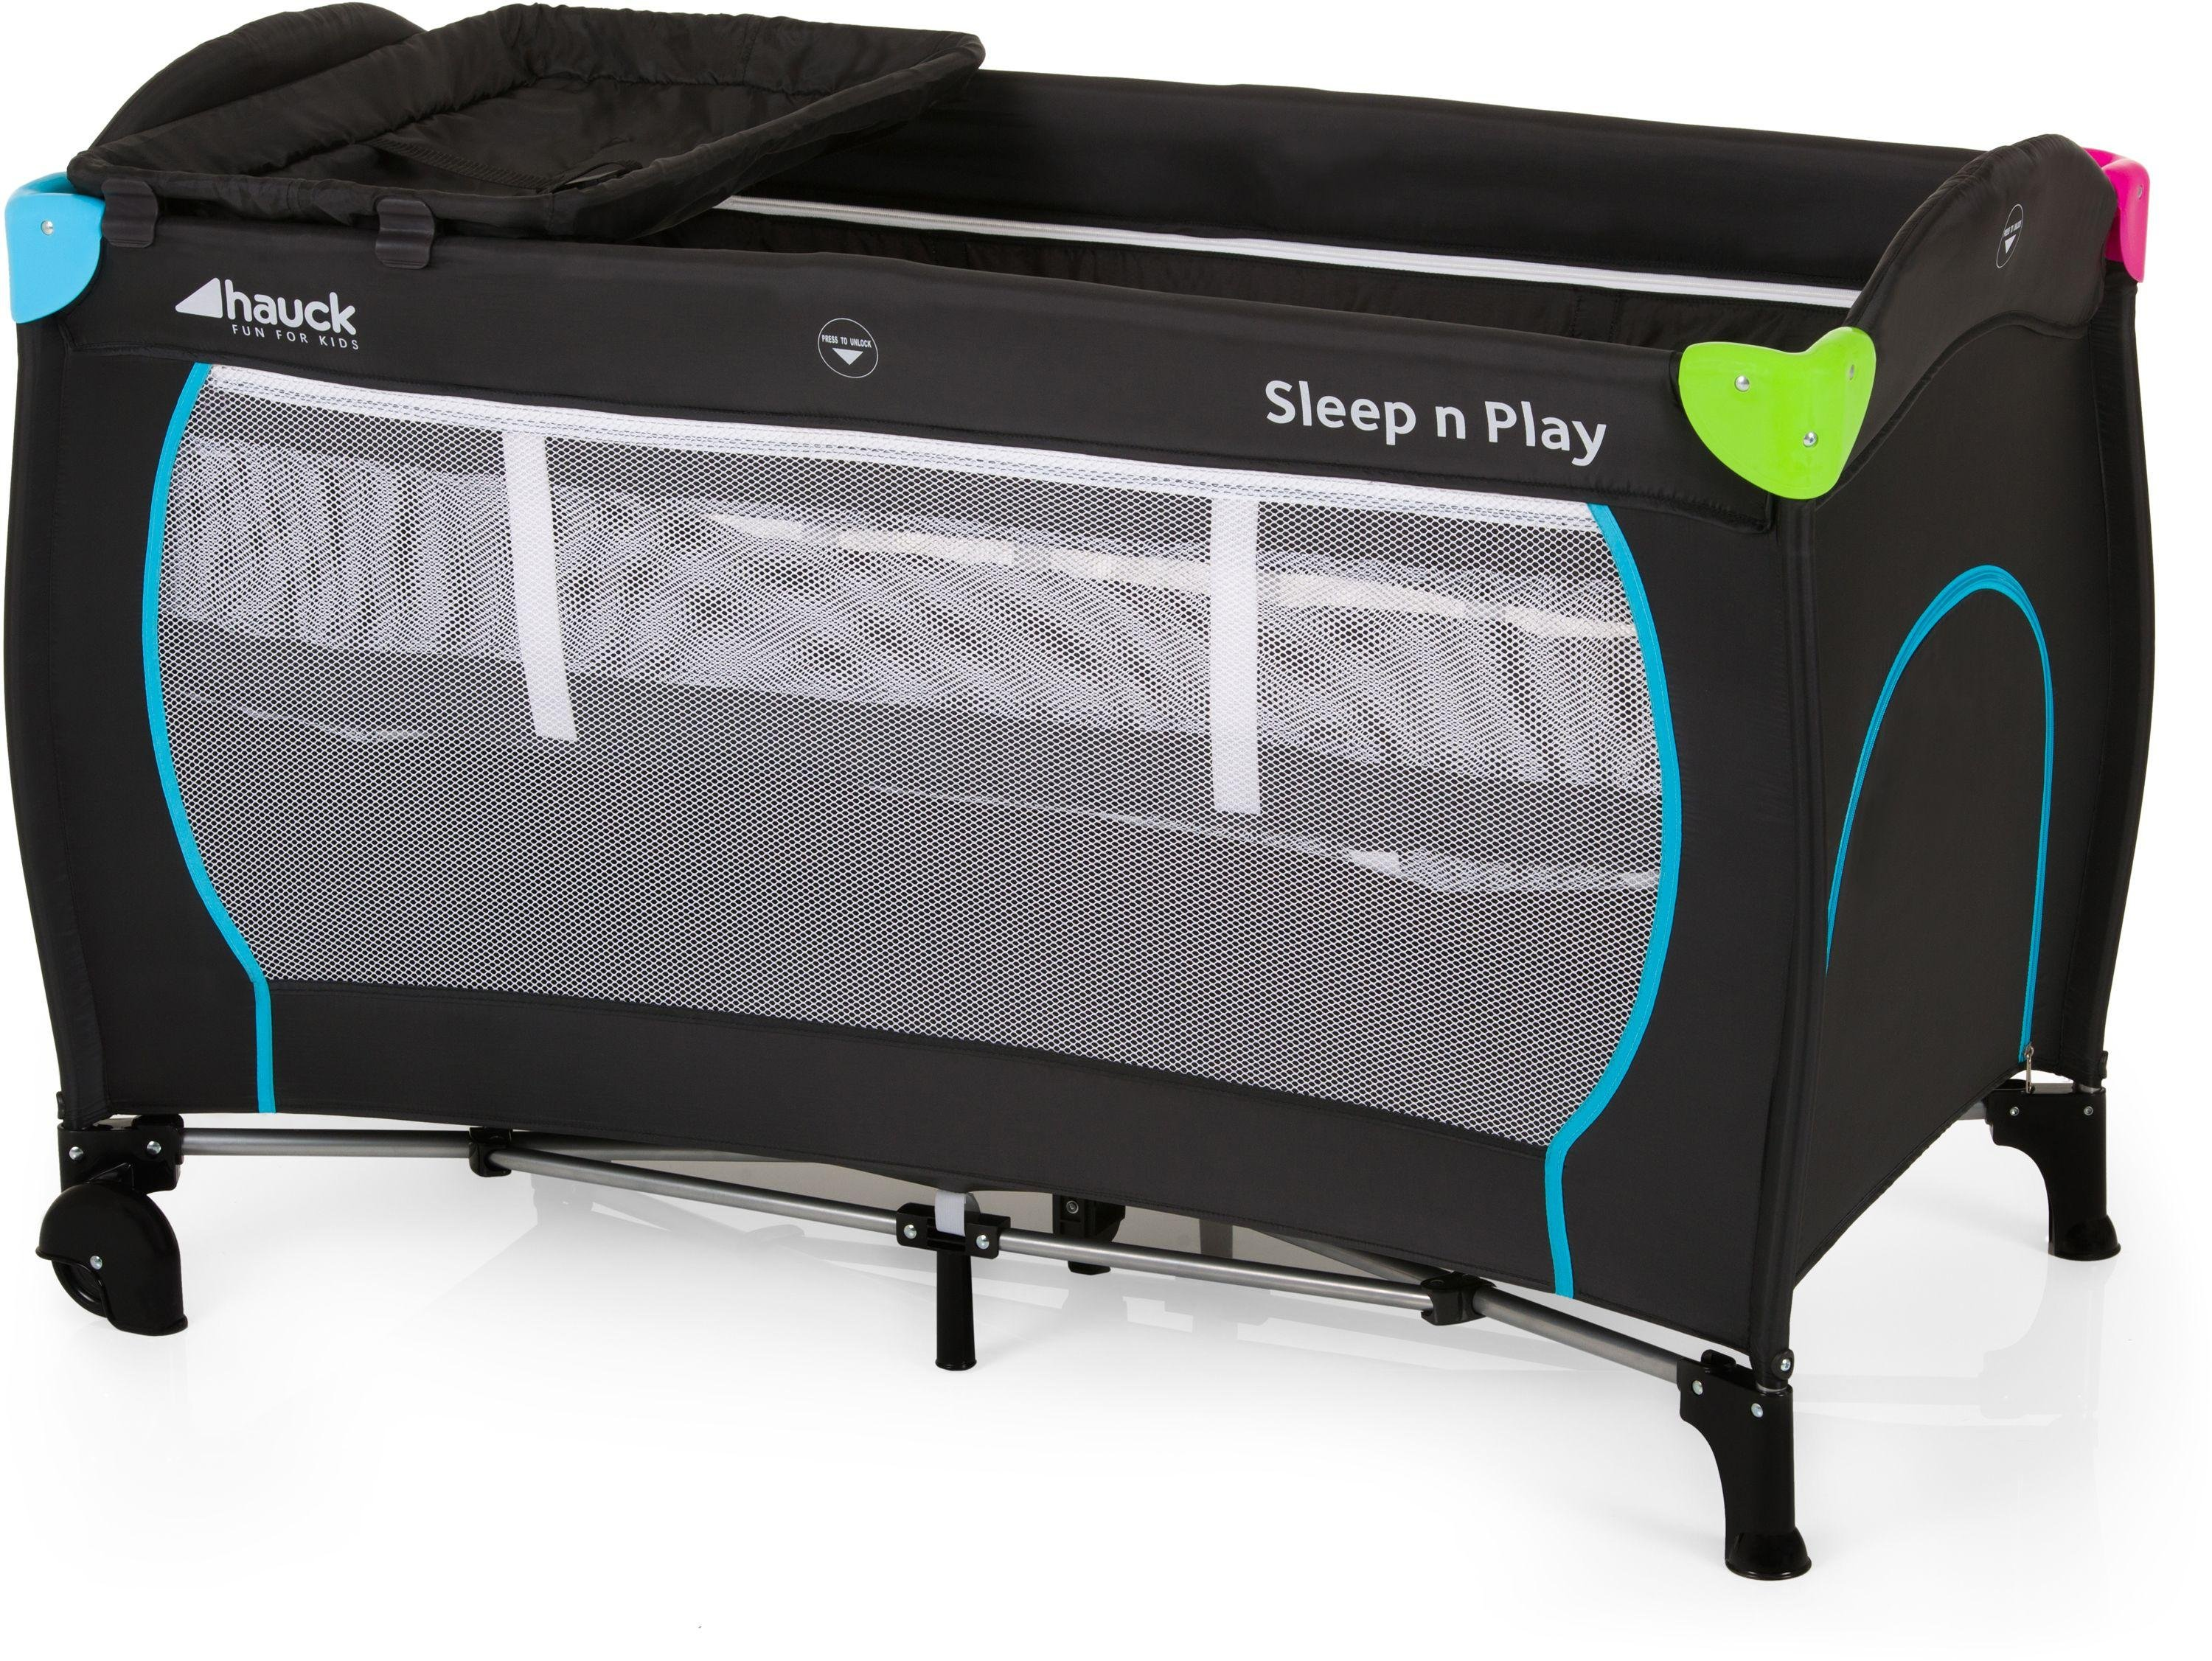 Image of Hauck Sleep'n Play Center Travel Cot - Black and Multicolour